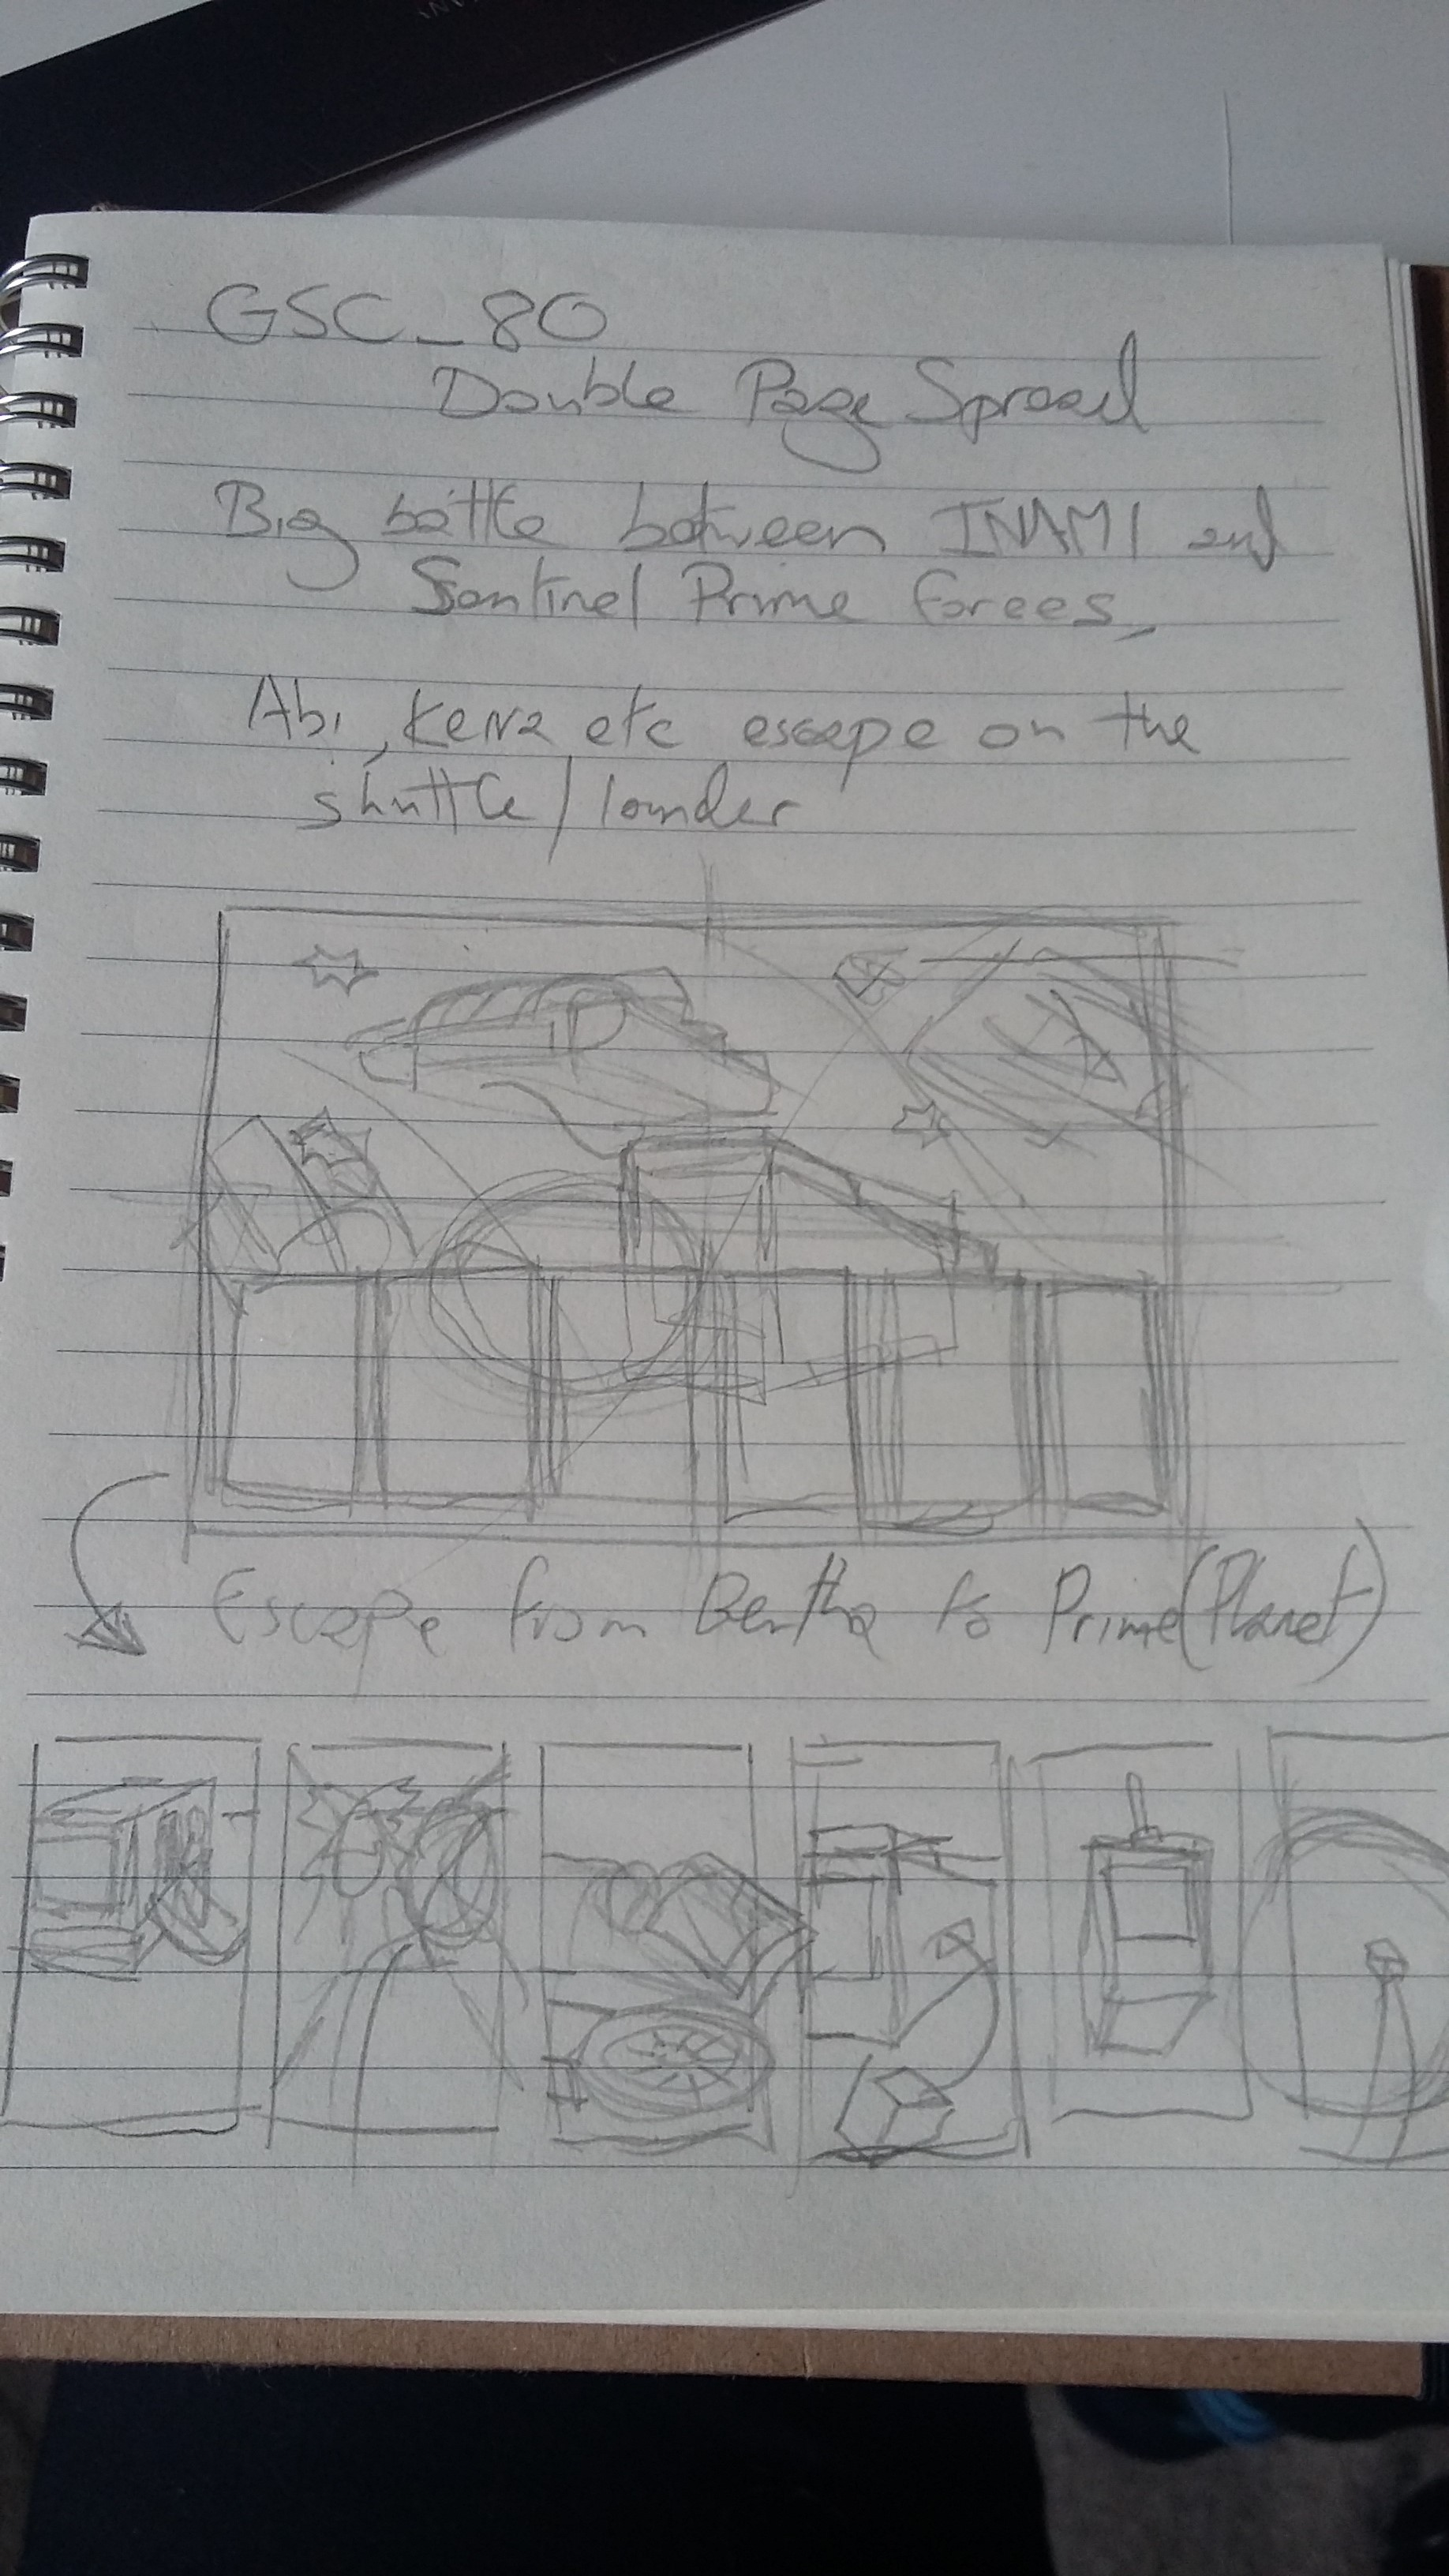 Initial thumbnails and notes on the pages